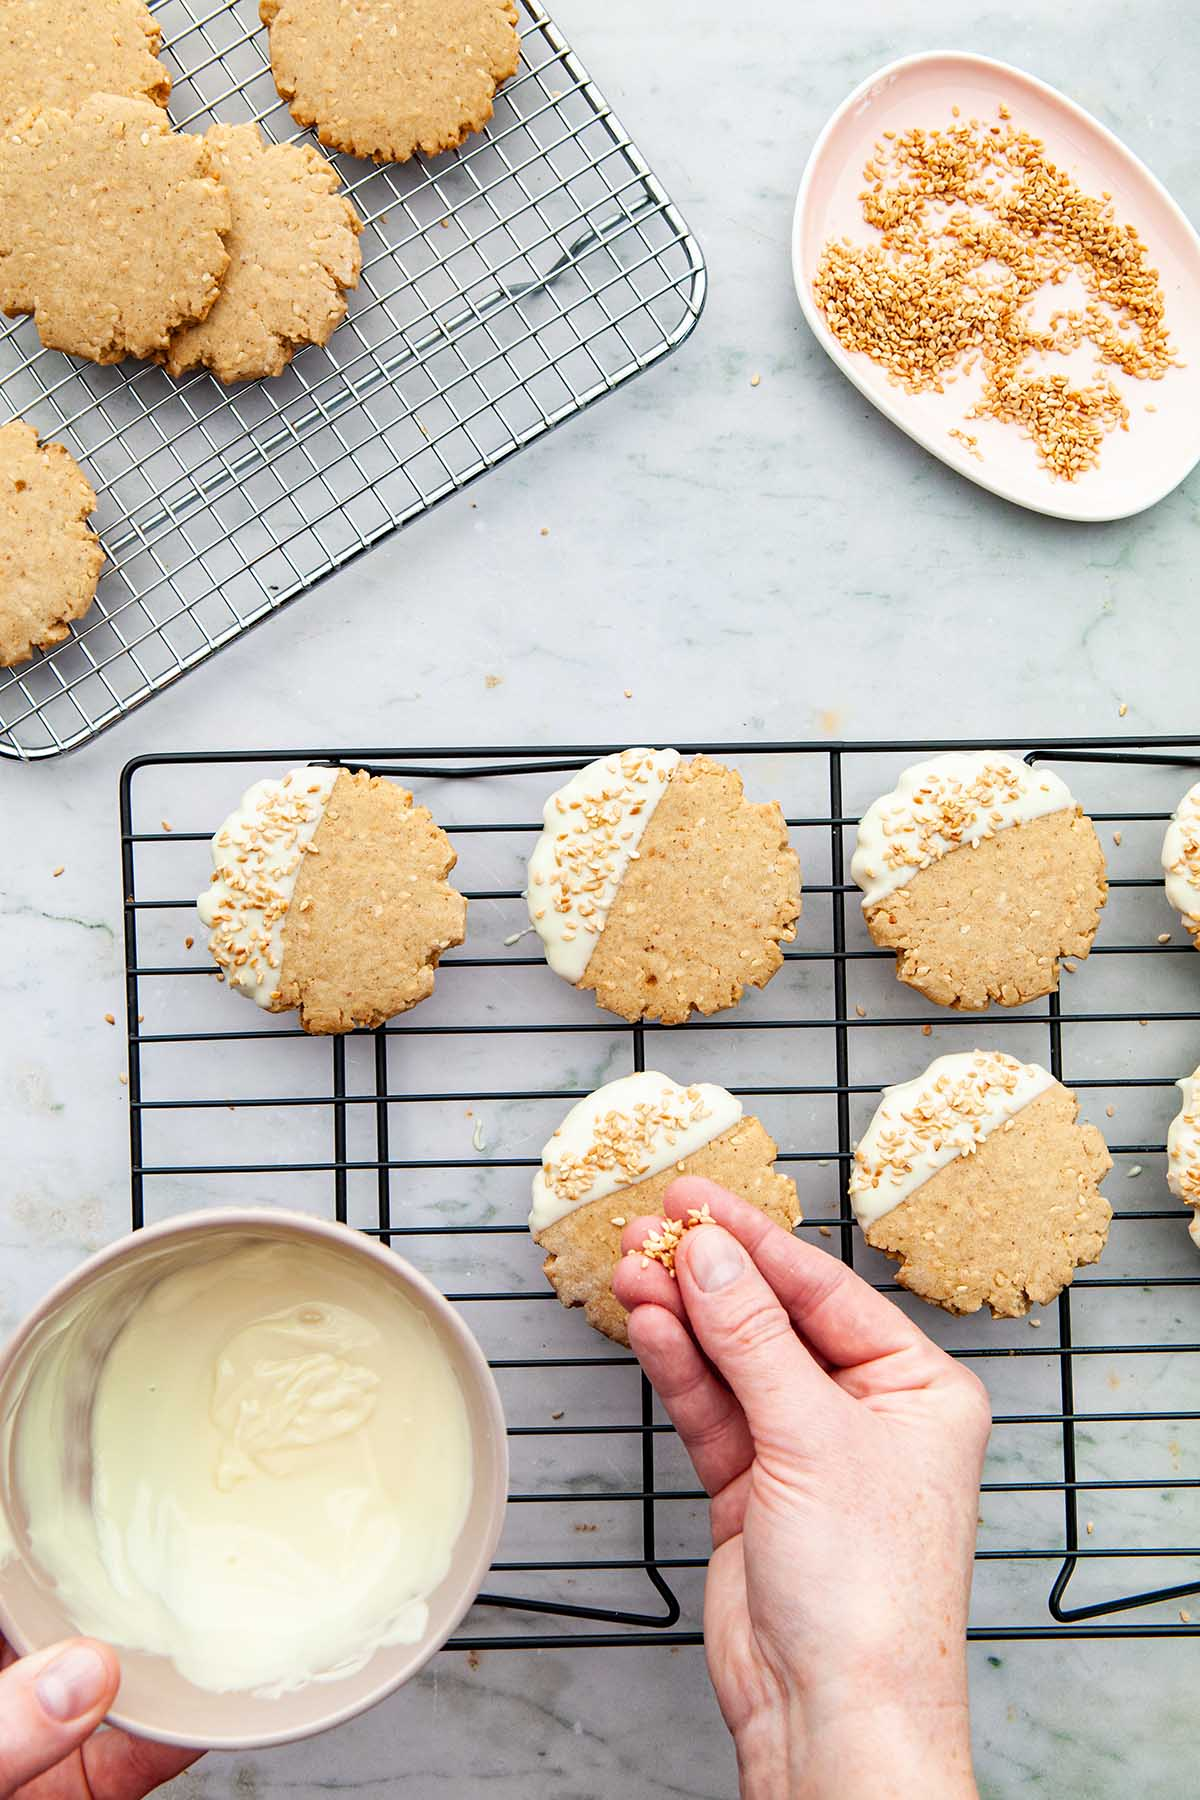 A hand sprinkling sesame seeds onto cookies half-dipped in melted white chocolate.